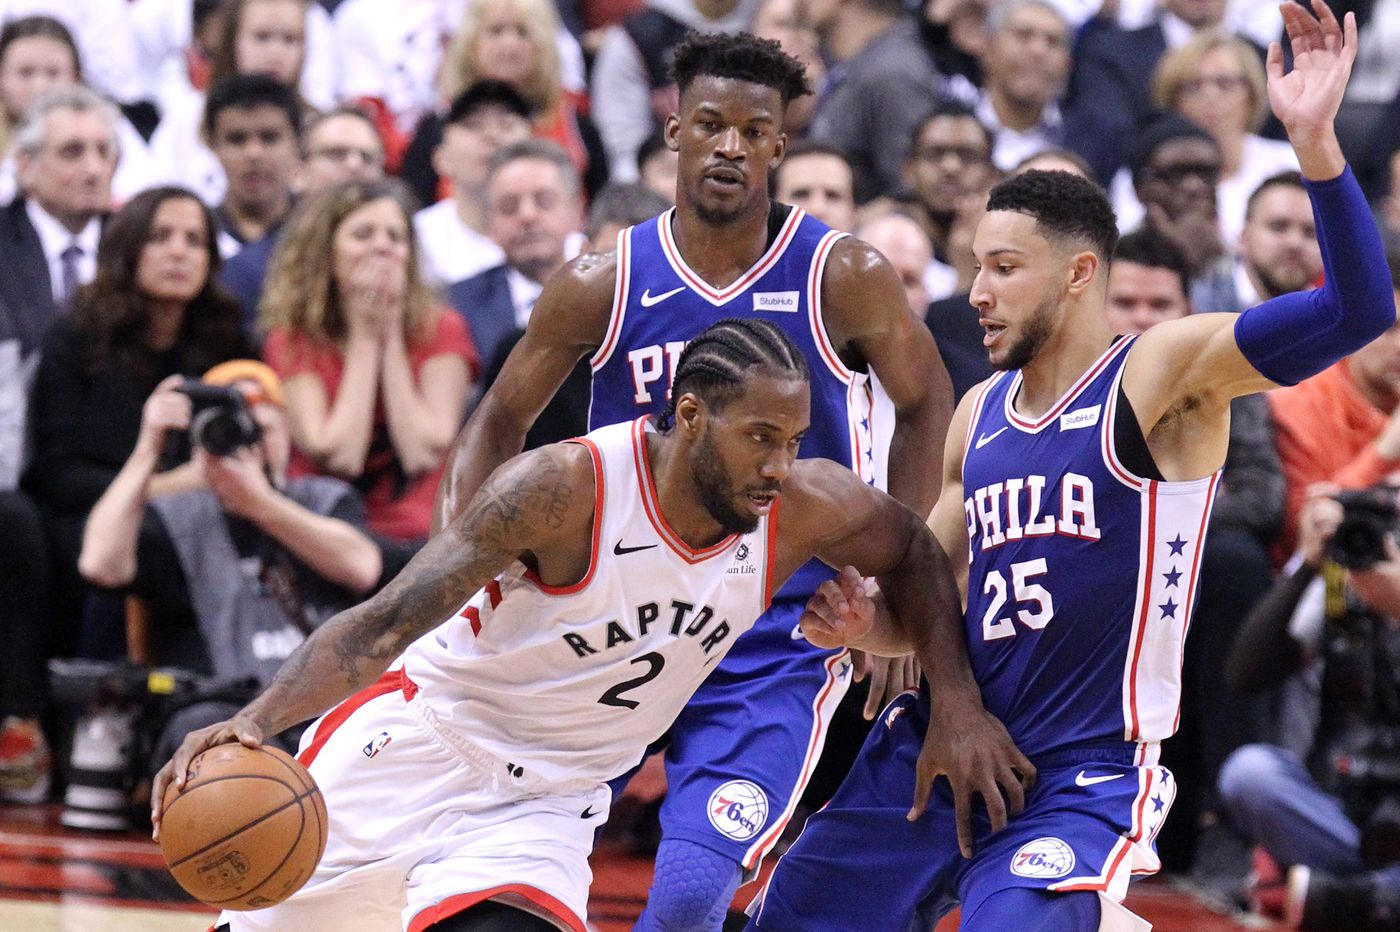 Sixers-Raptors playoff chess match continues as series moves to Philadelphia